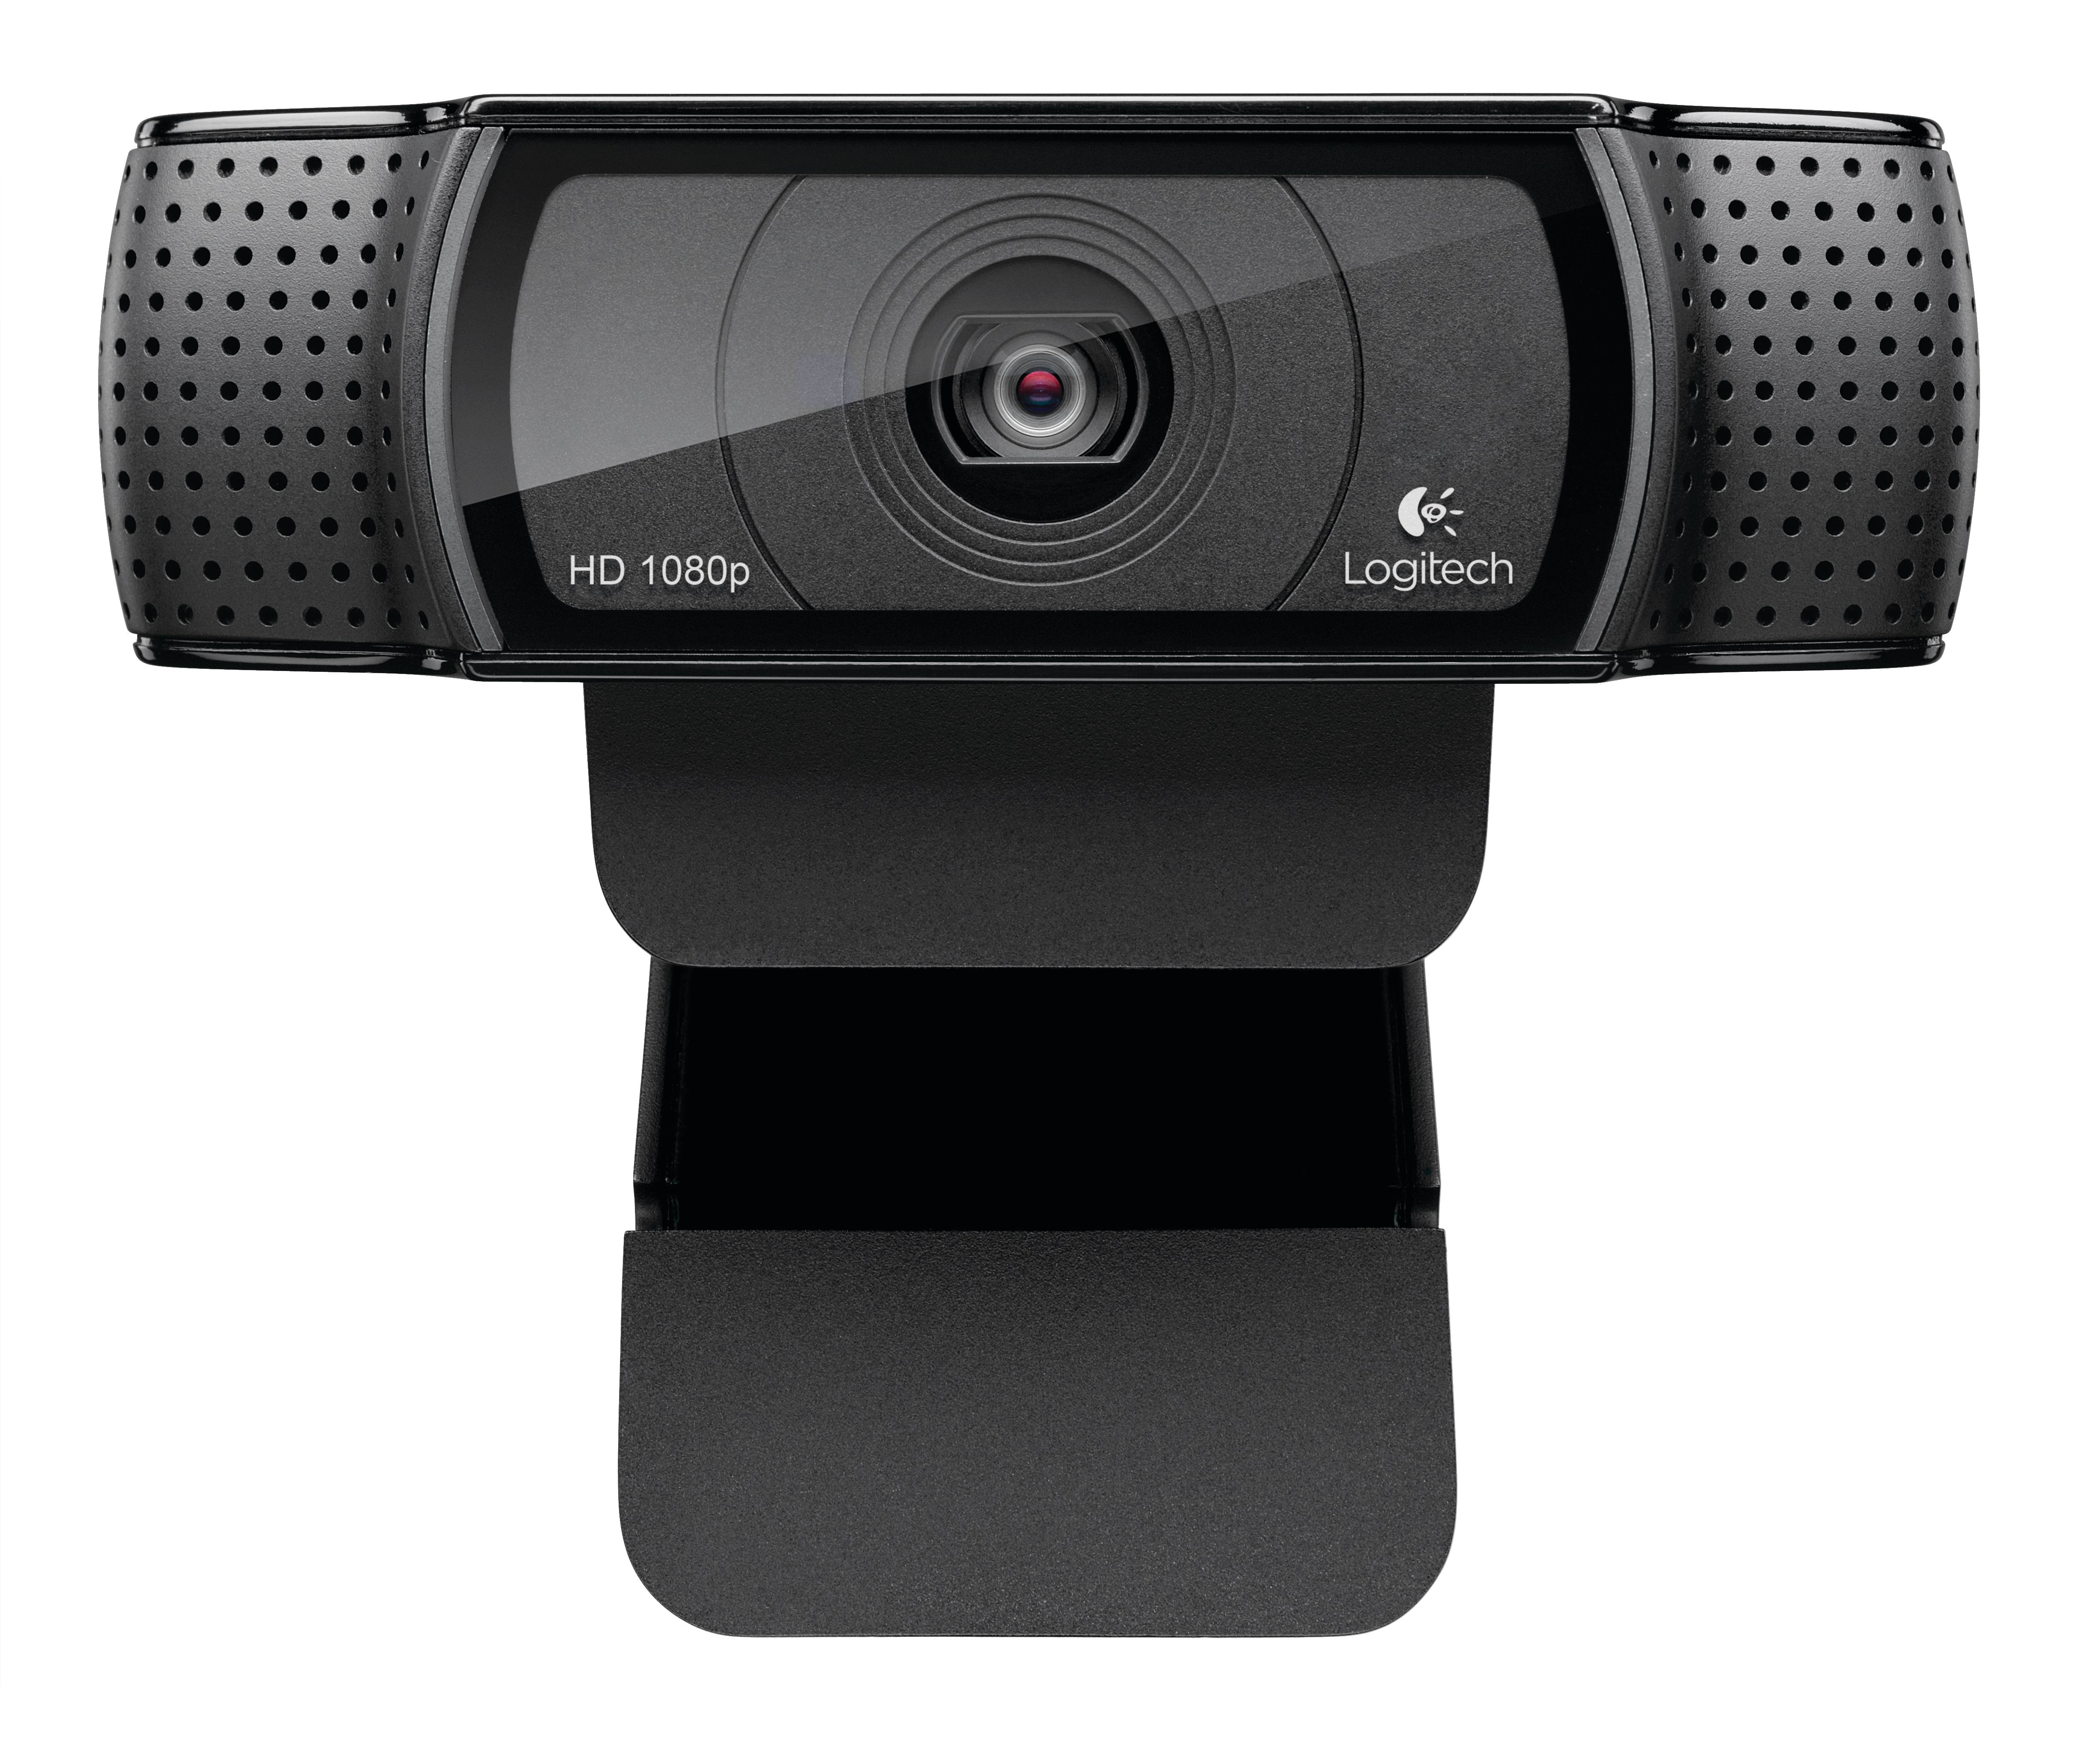 960-001055 Logitech C920 Webcam HD Pro Factory Sealed